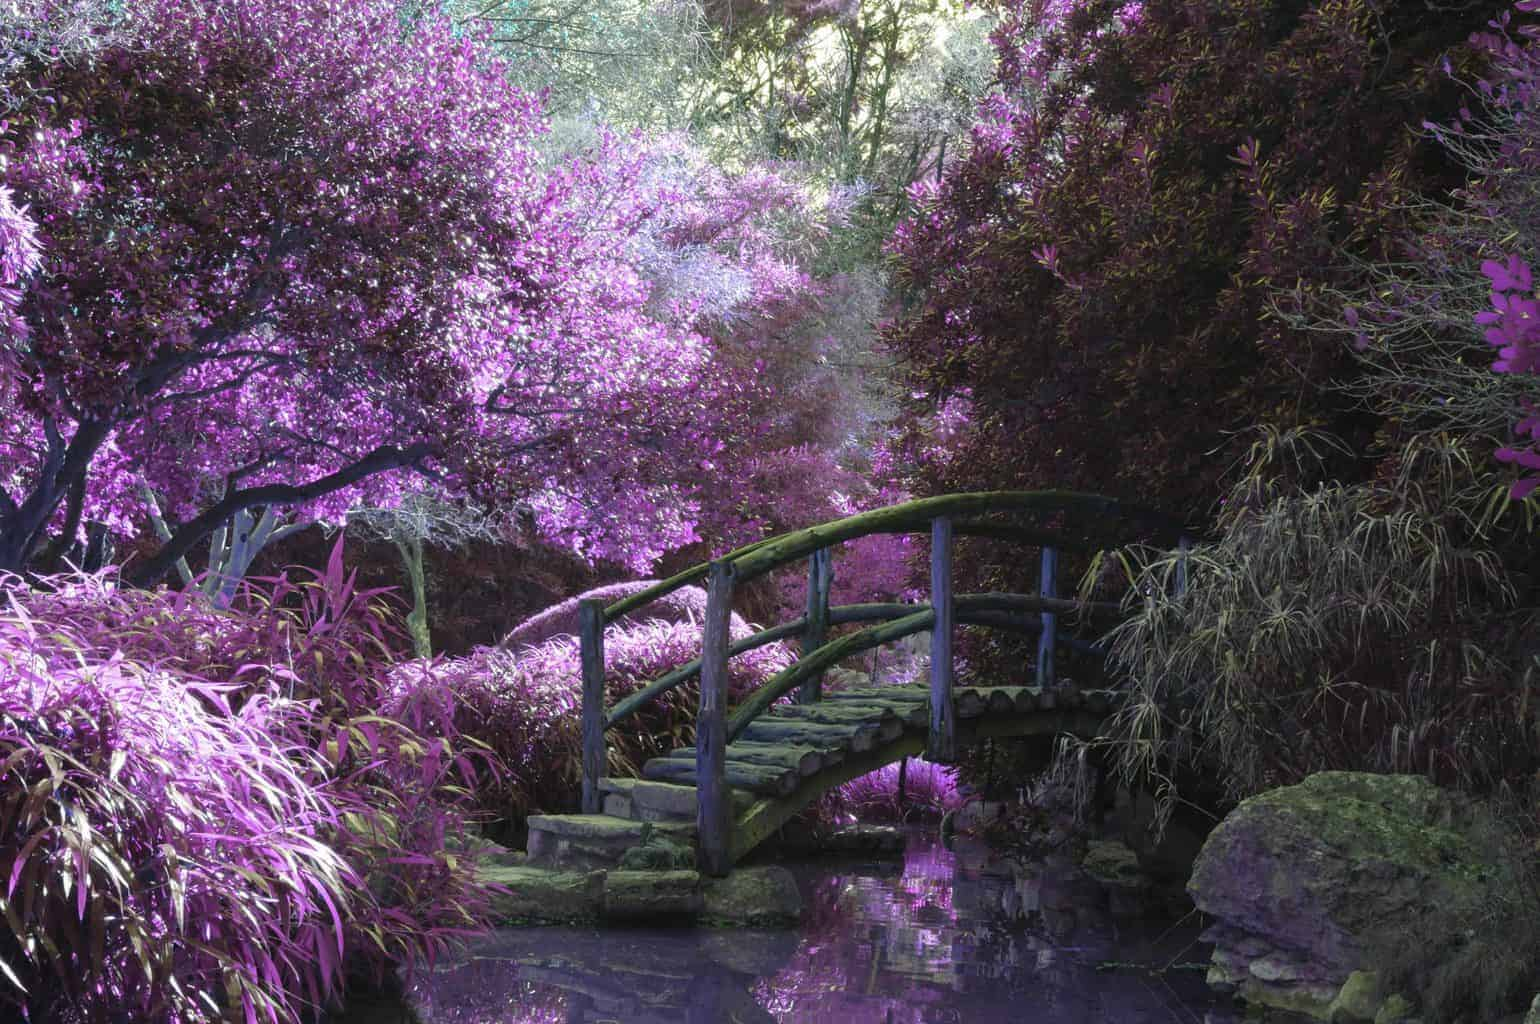 Garden filled with lavender flowers and a bridge.